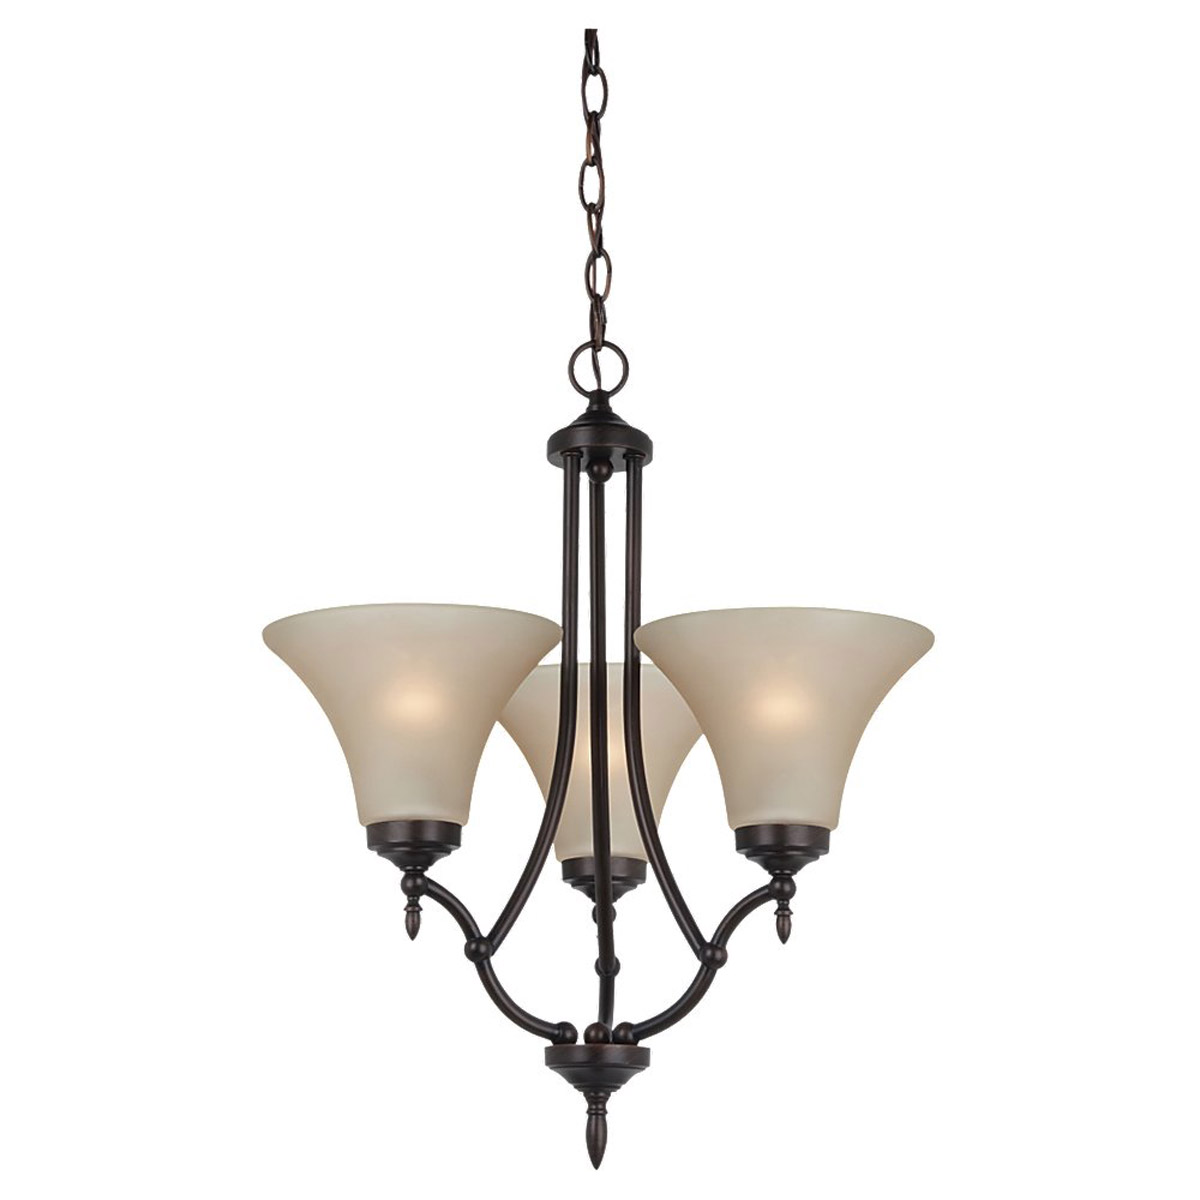 Sea Gull 31180BLE-710 Montreal 3 Light 18 inch Burnt Sienna Chandelier Ceiling Light in Cafe Tint Glass, Fluorescent photo